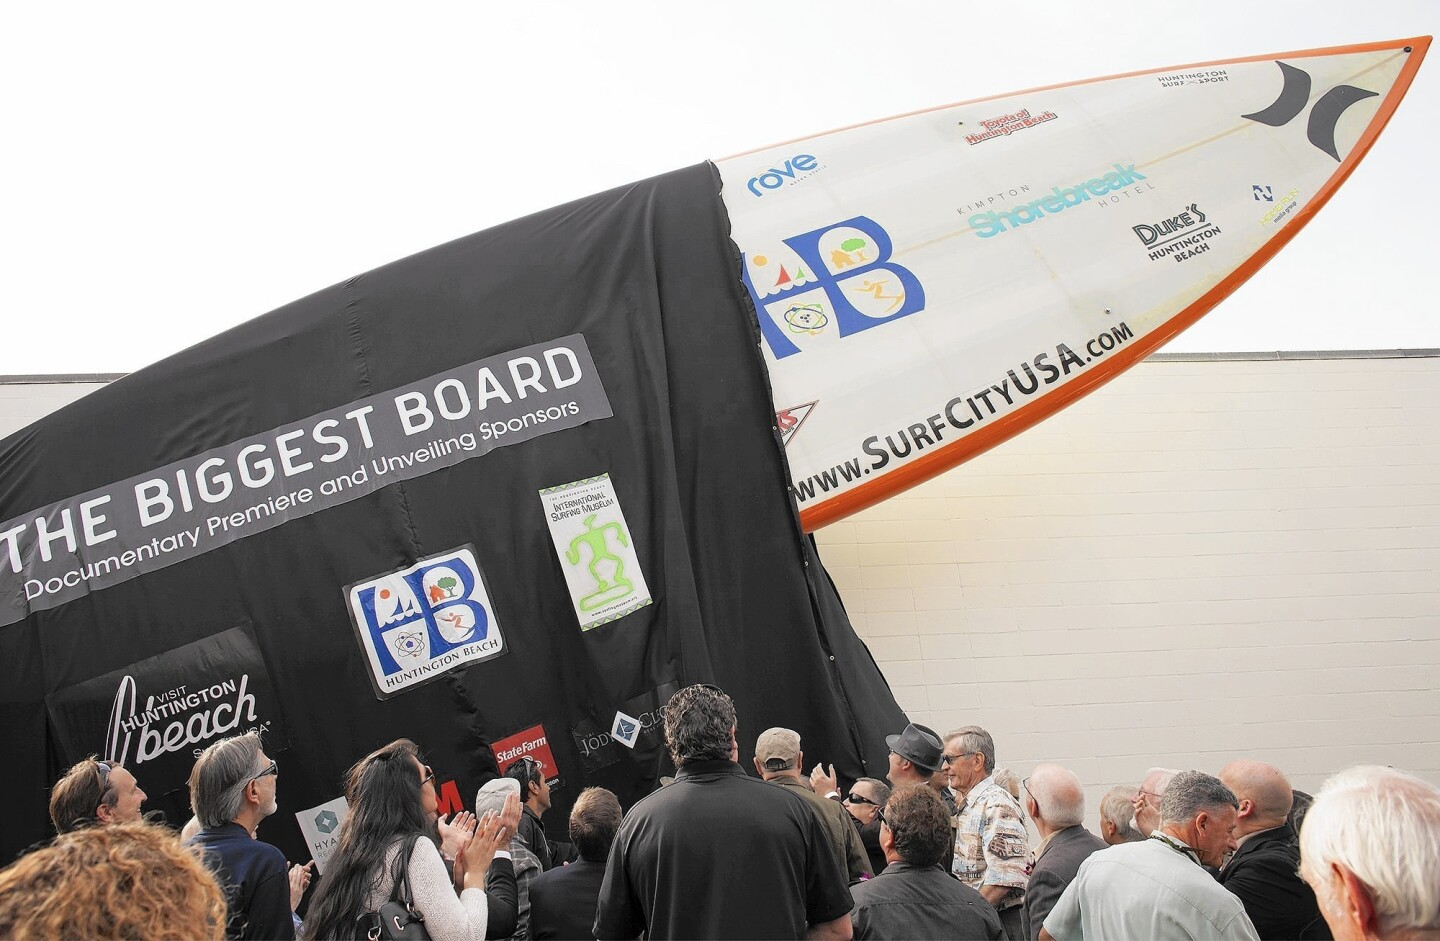 Visit Huntington Beach unveils the world's largest surfboard, 42 1/4 feet long, 11 feet 1 inch wide and 16 inches thick, at the International Surfing Museum in Huntington Beach on Friday, Jan. 22.